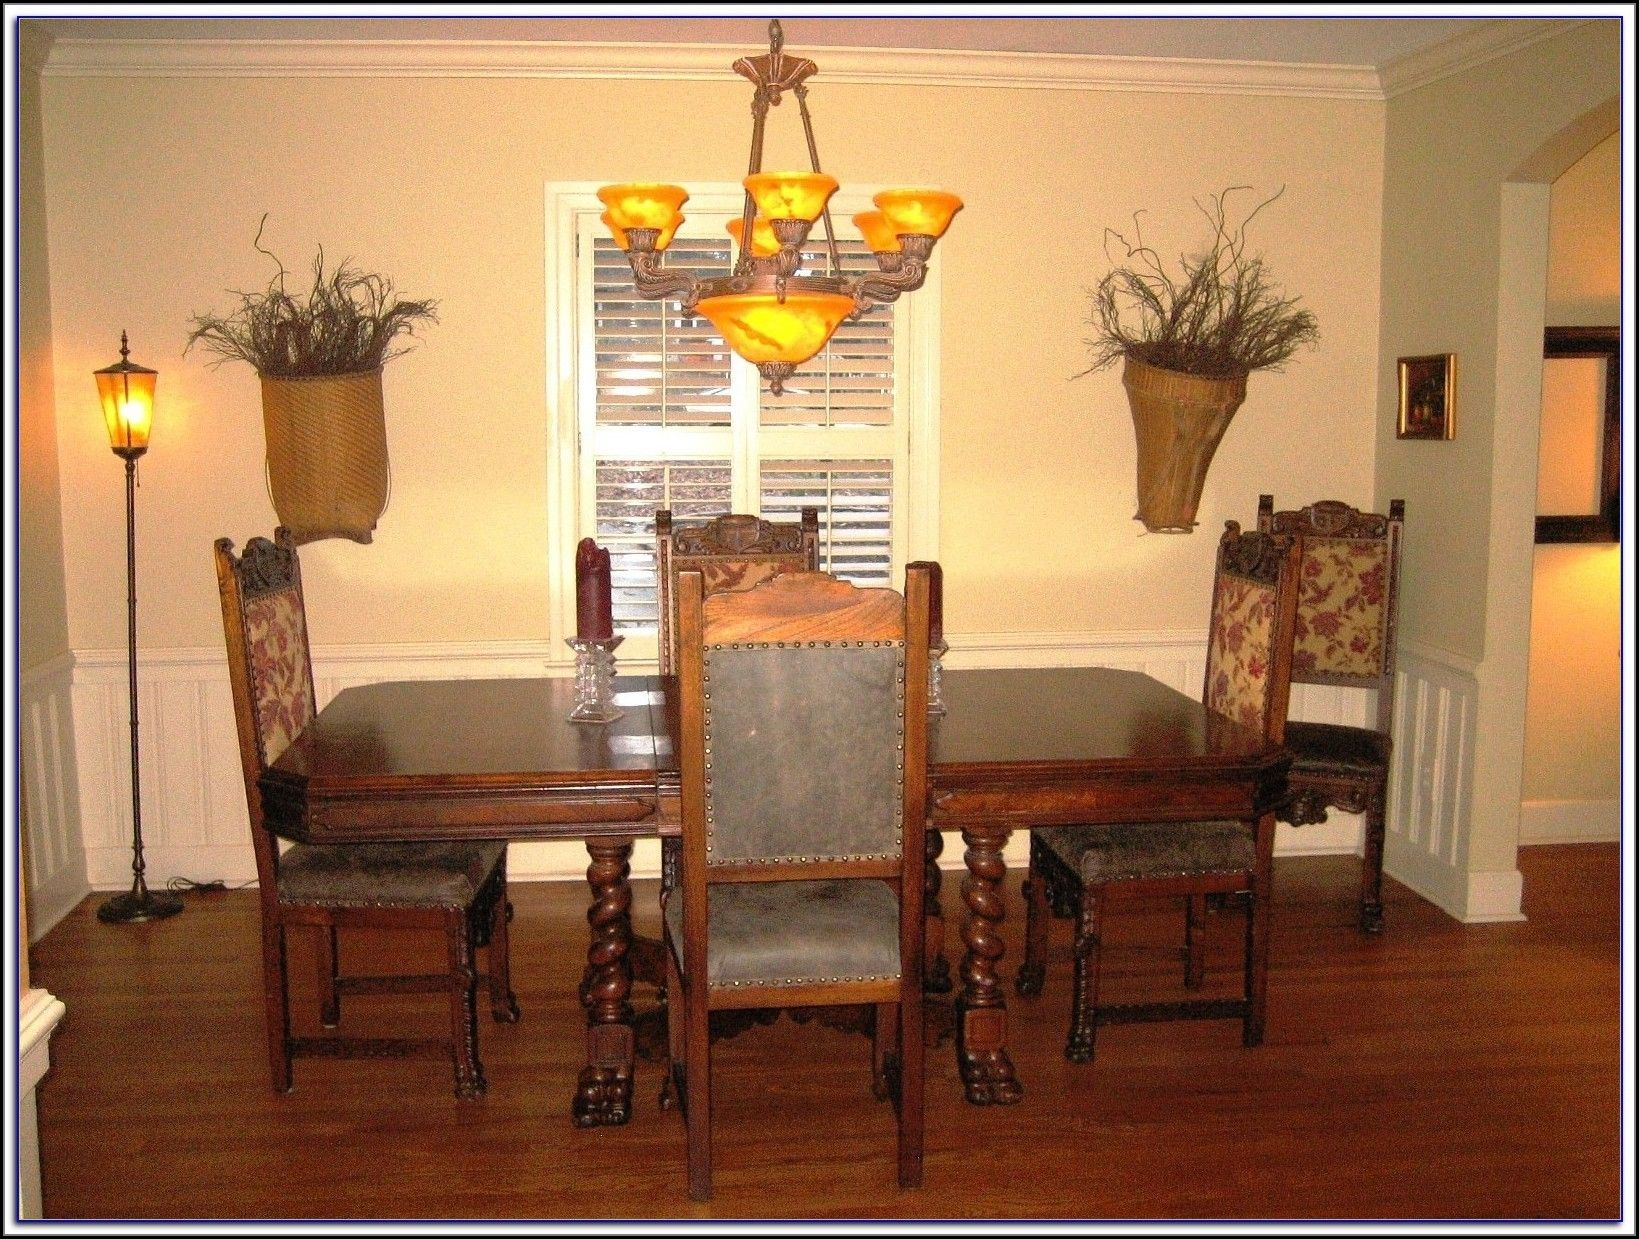 Craigslist Furniture Knoxville Tenn In Charm Craigslist Knoxville Regarding Craigslist Knoxville Furniture 32097